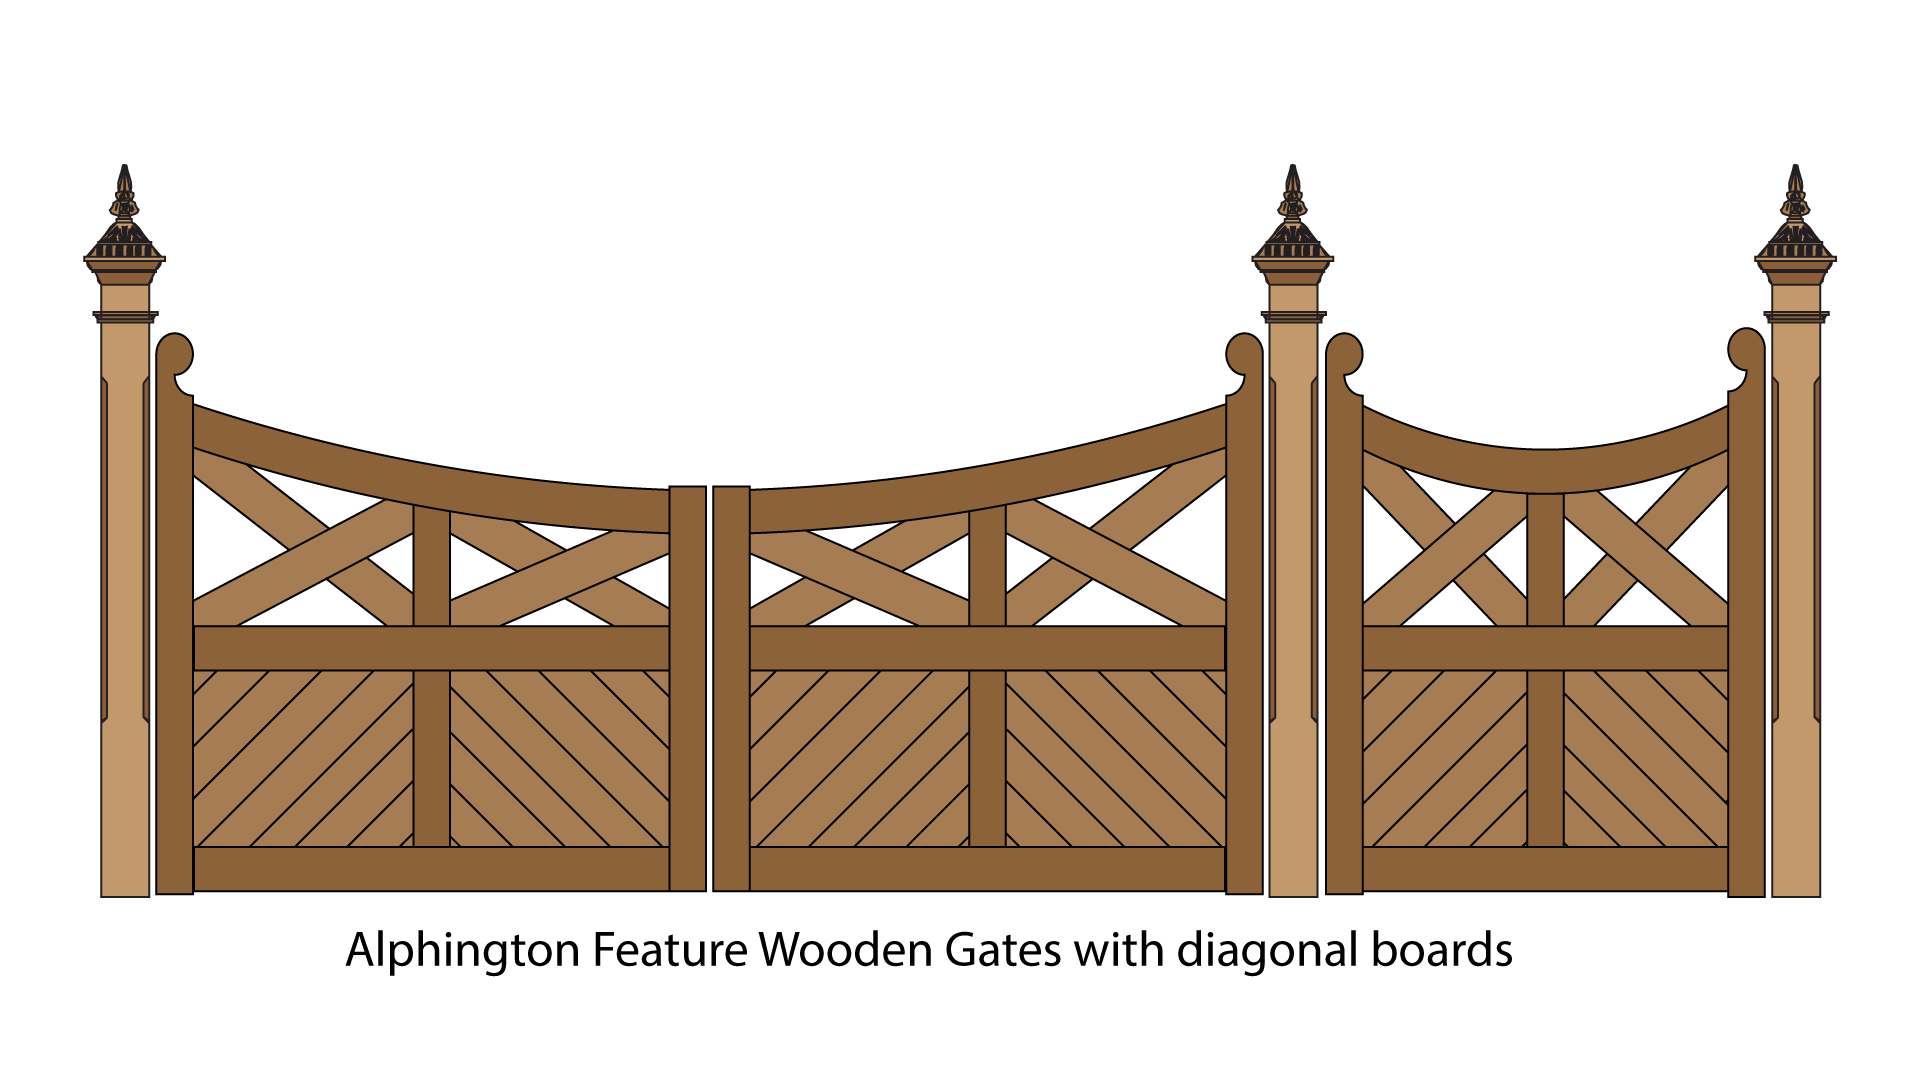 Alphington feature wooden gates with diagonal boards